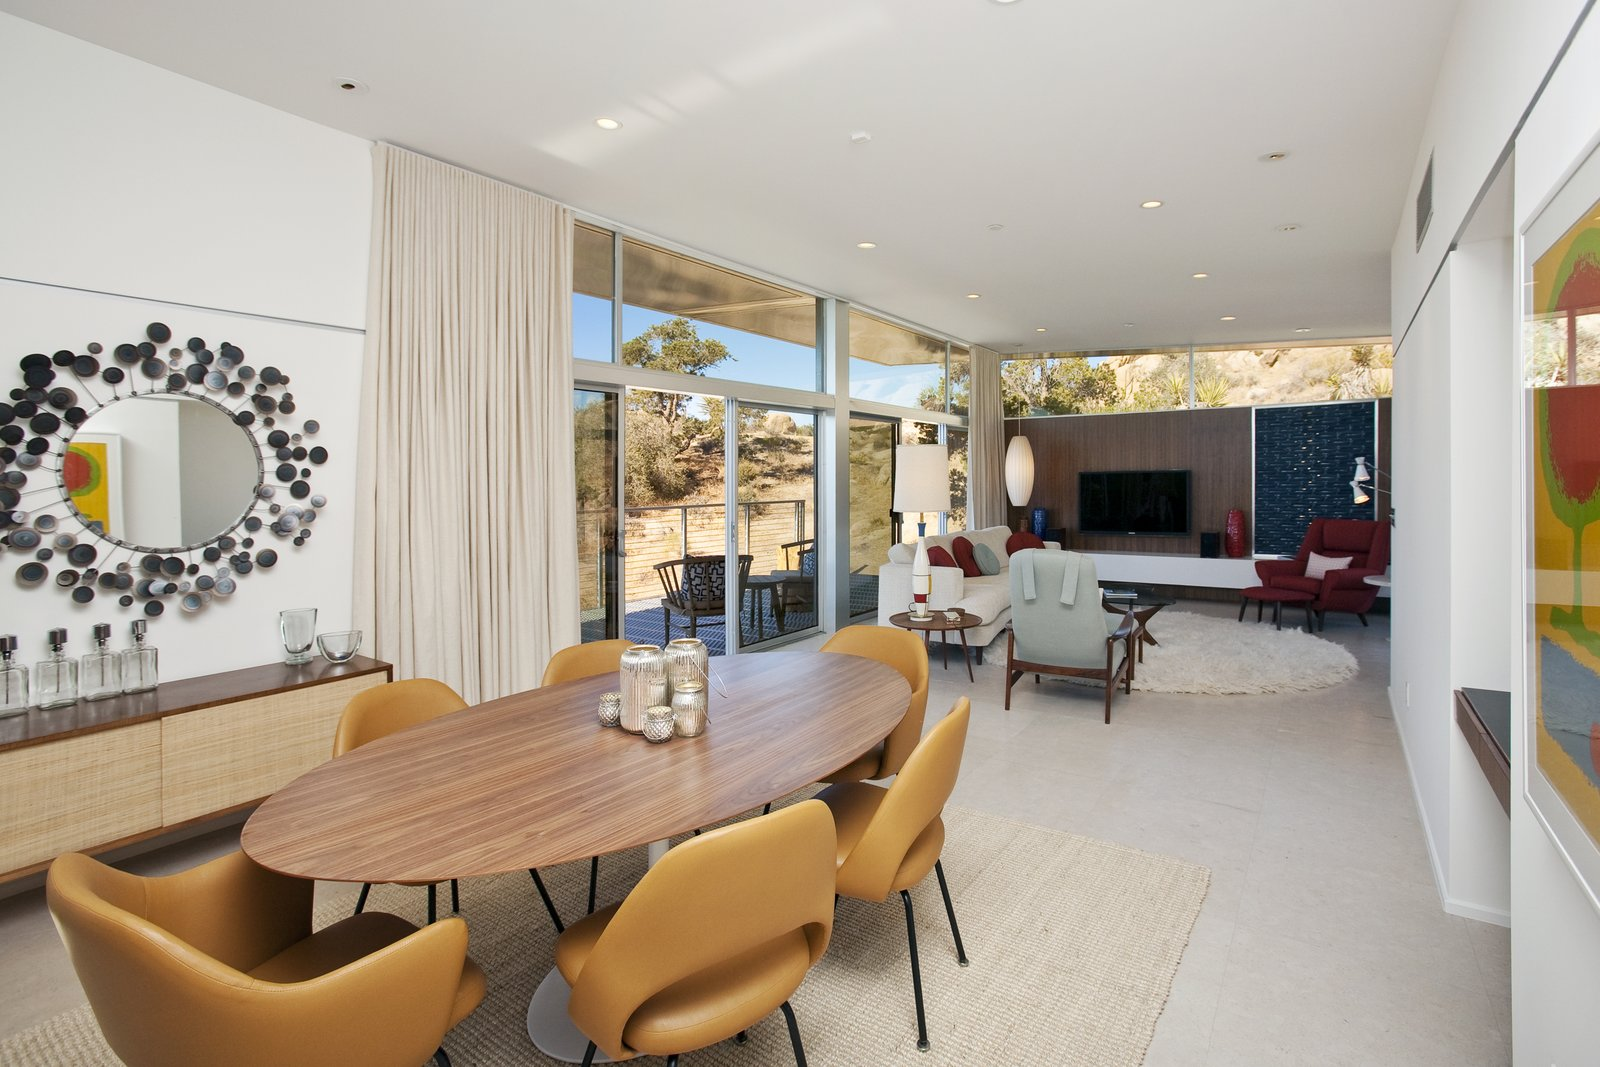 The Home Features An Open Floor Plan With A Combined Living Room Dining